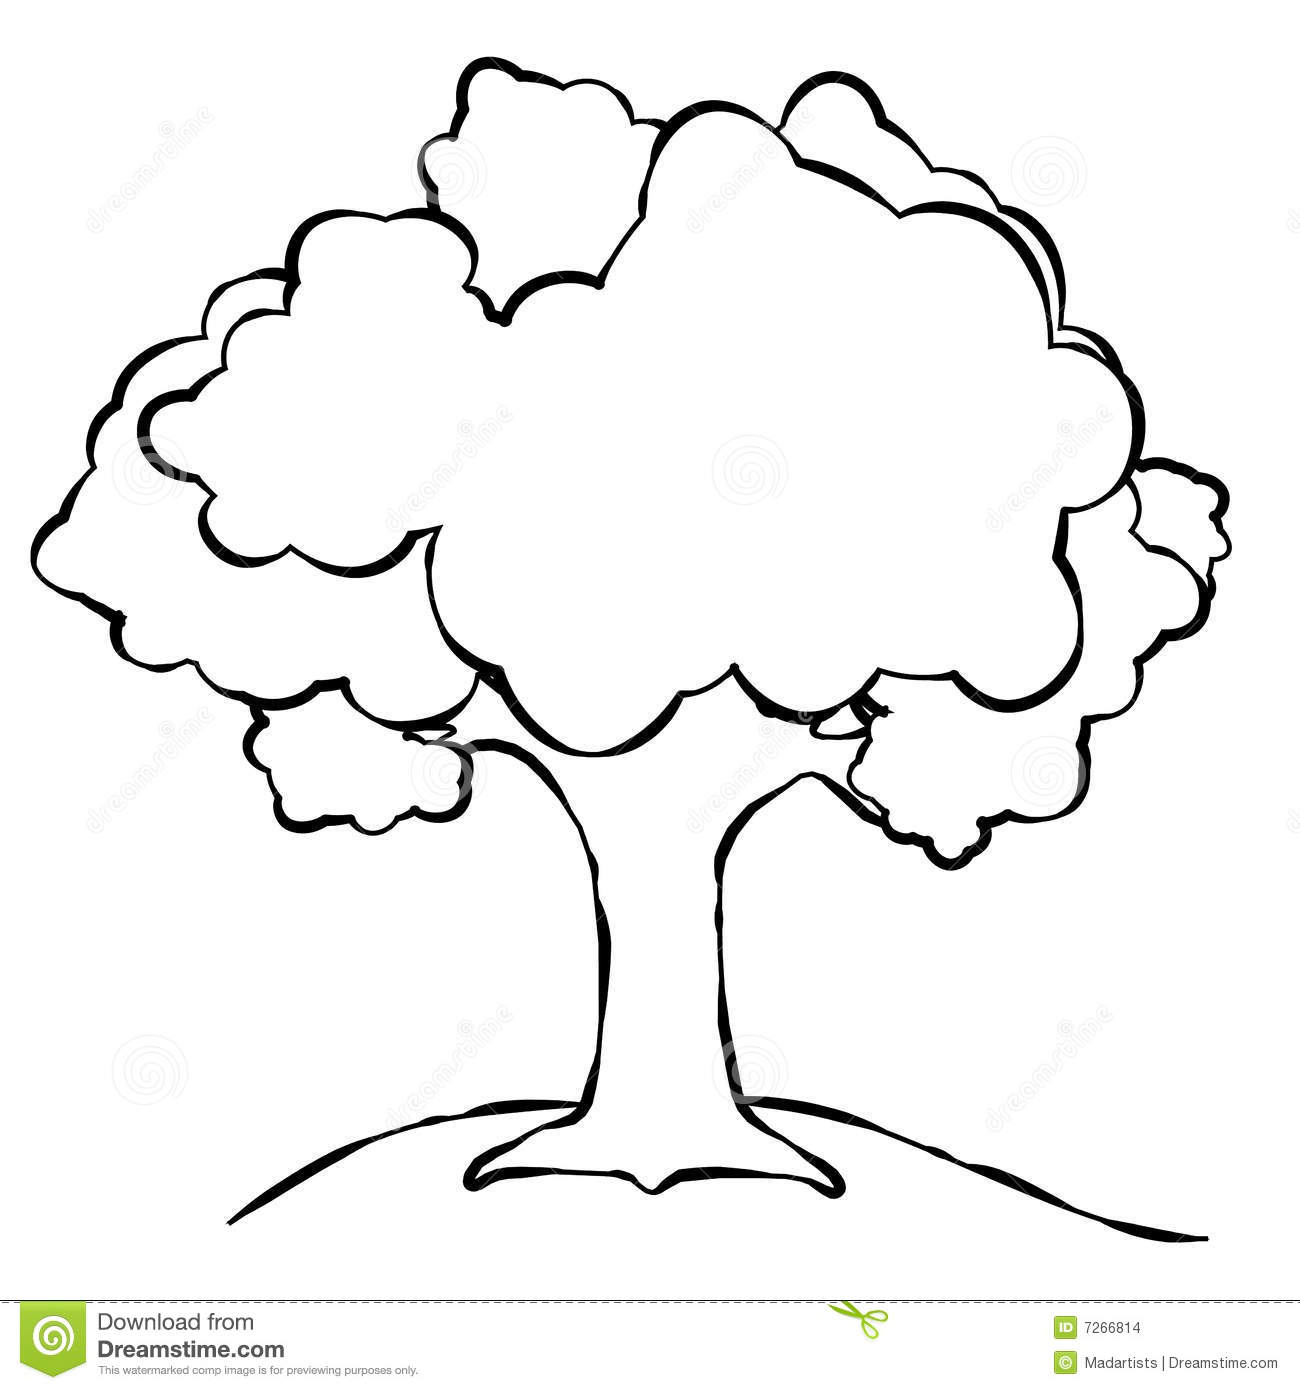 simple tree illustration line art black and white